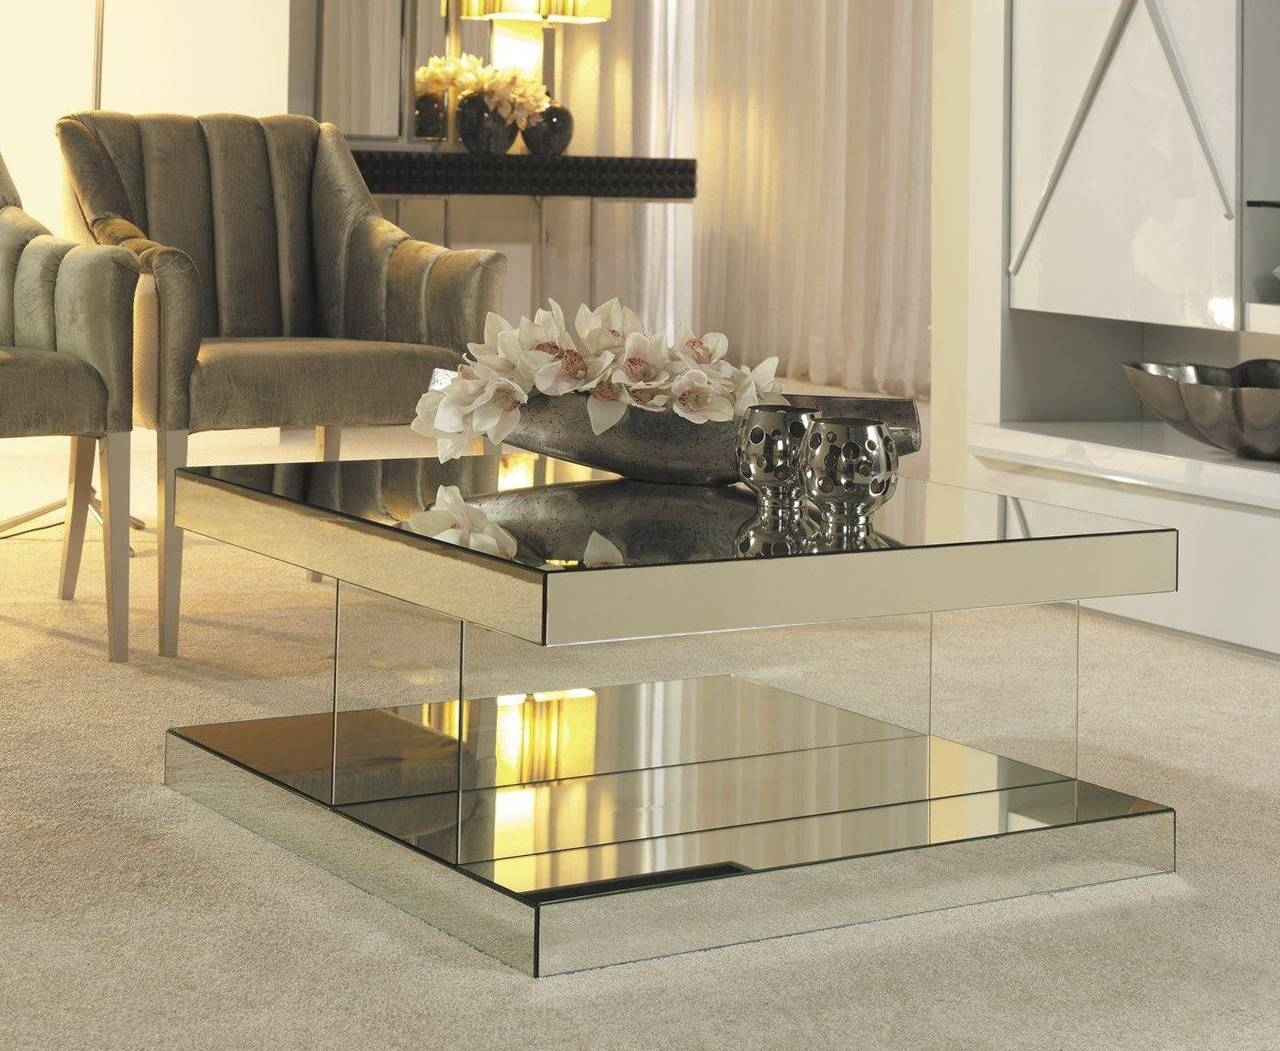 Luxurious Mirrored Coffee Table Intended For Mirrored Coffee Tables (View 3 of 30)